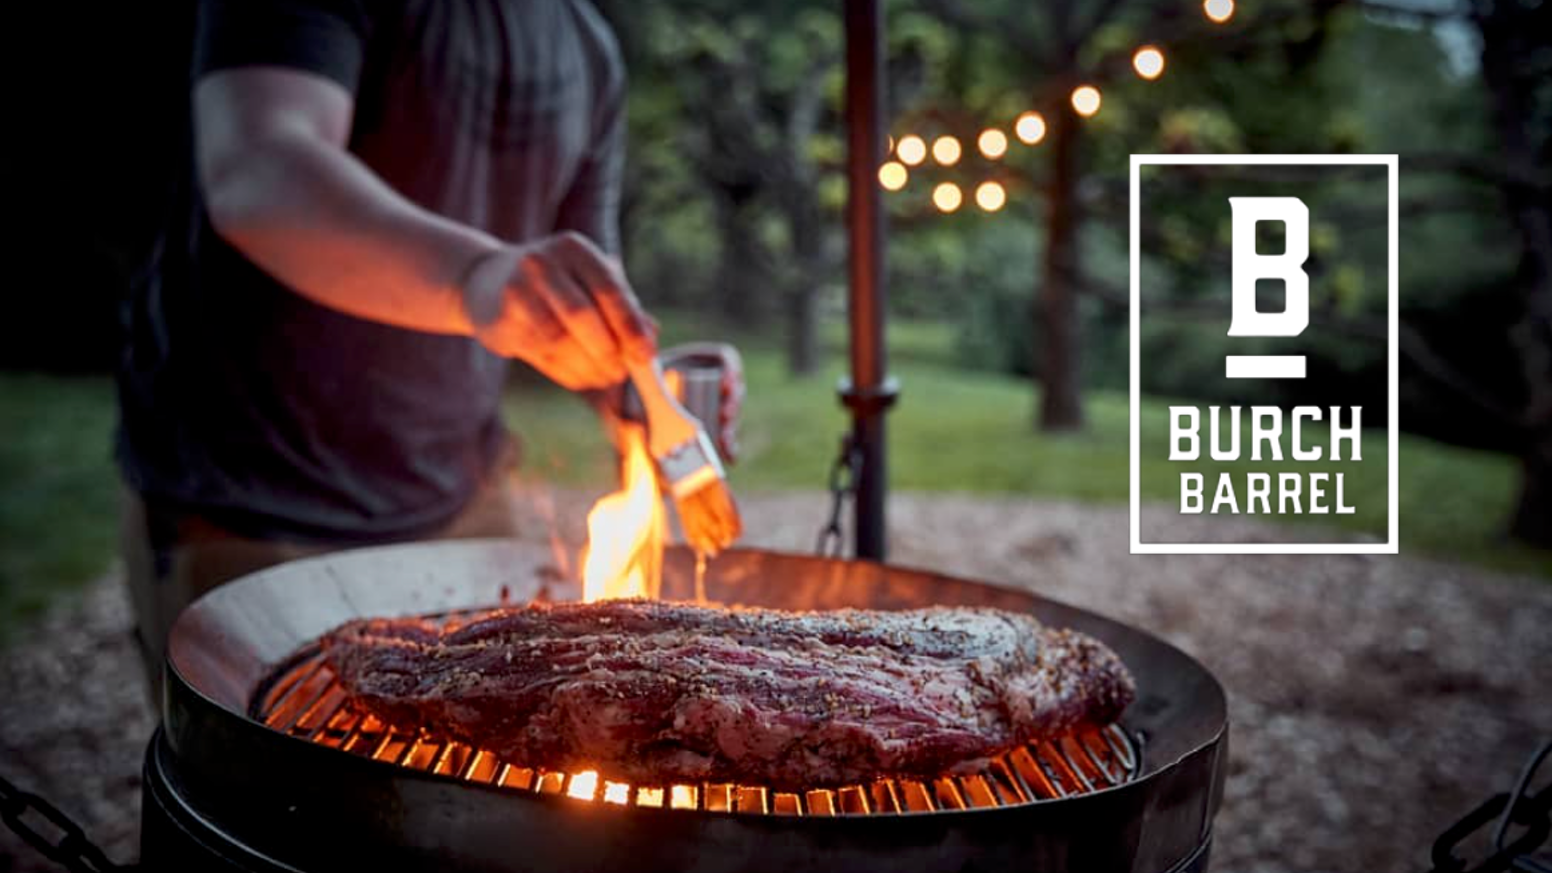 Savor the Moment. From backyard to base camp, the barrel is a portable hearth where family & friends can cook, eat, & share stories.